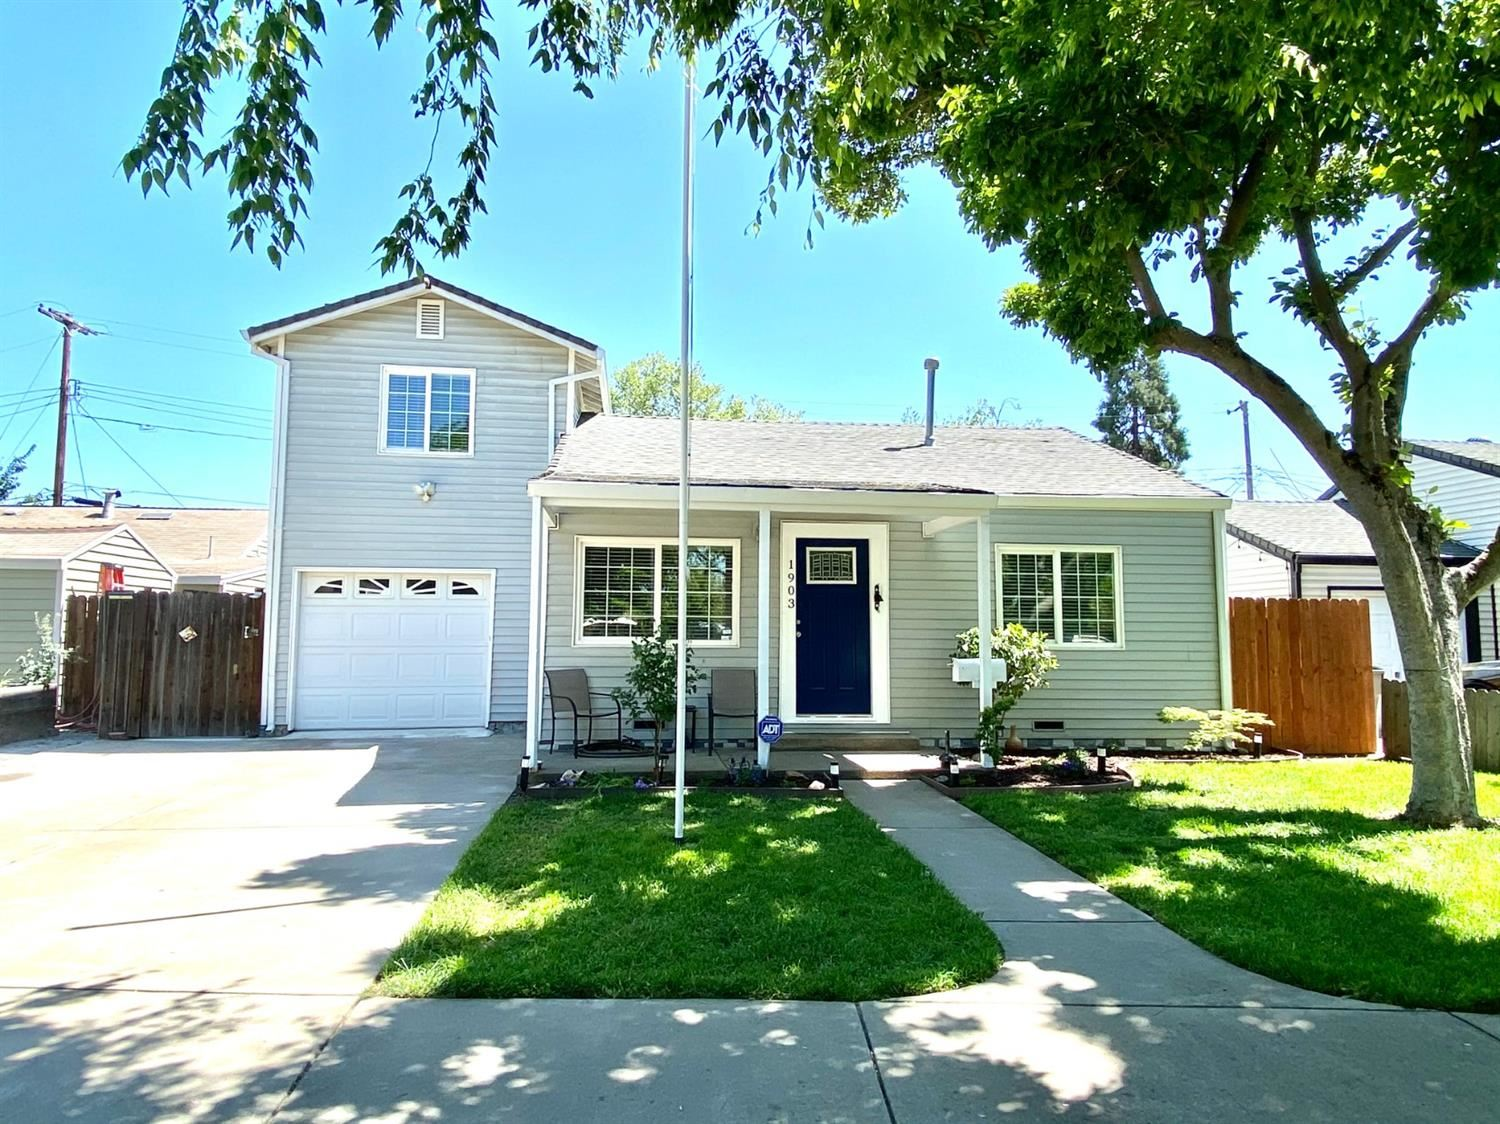 Photo of 1903 Vermont Avenue, West Sacramento, CA 95691 (MLS # 221036784)